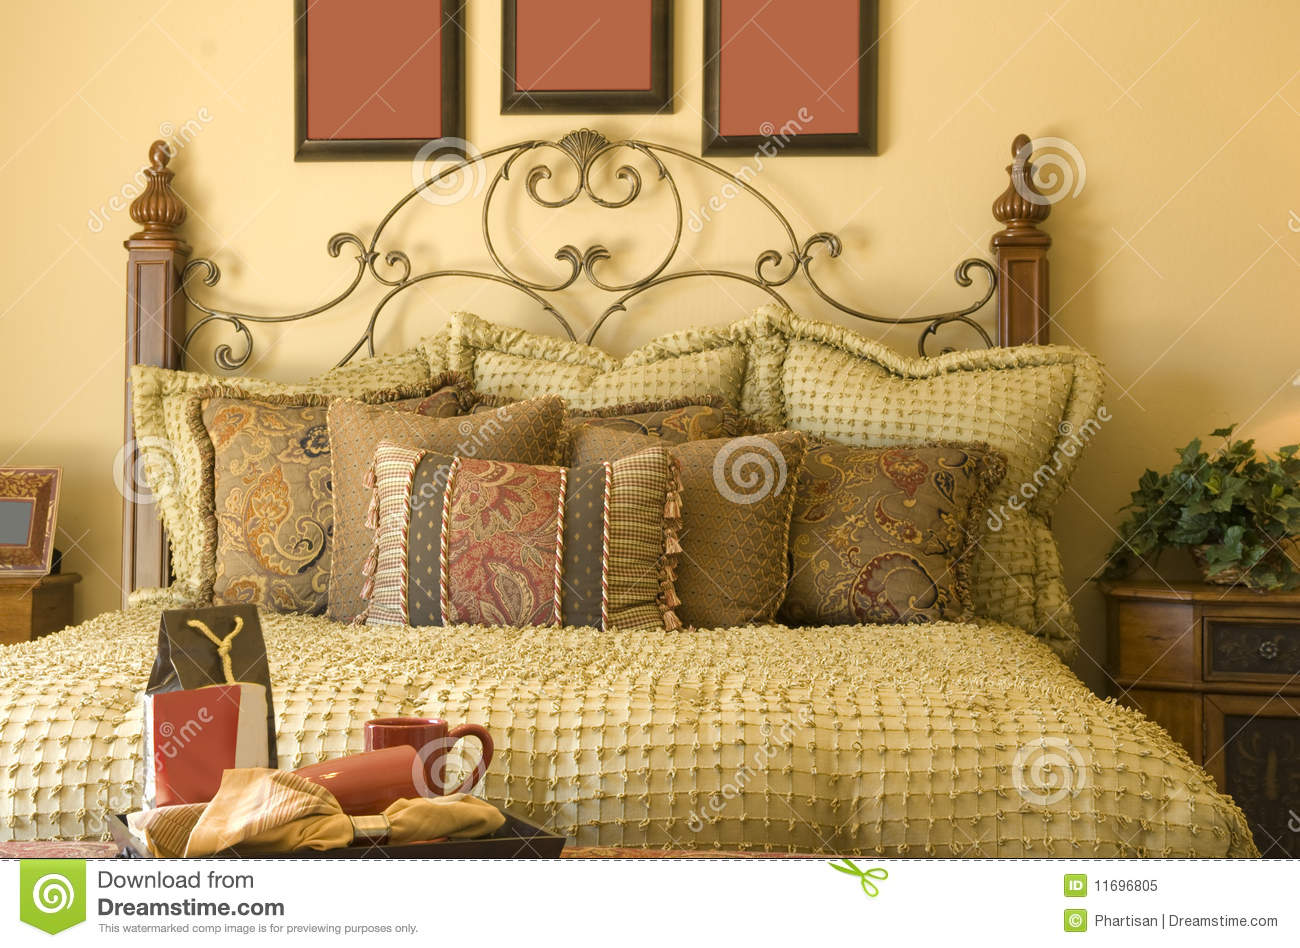 Beautiful cozy traditional style bedroom decor stock image image 11696805 - Beautiful snooze bedroom suites packing comfort in style ...